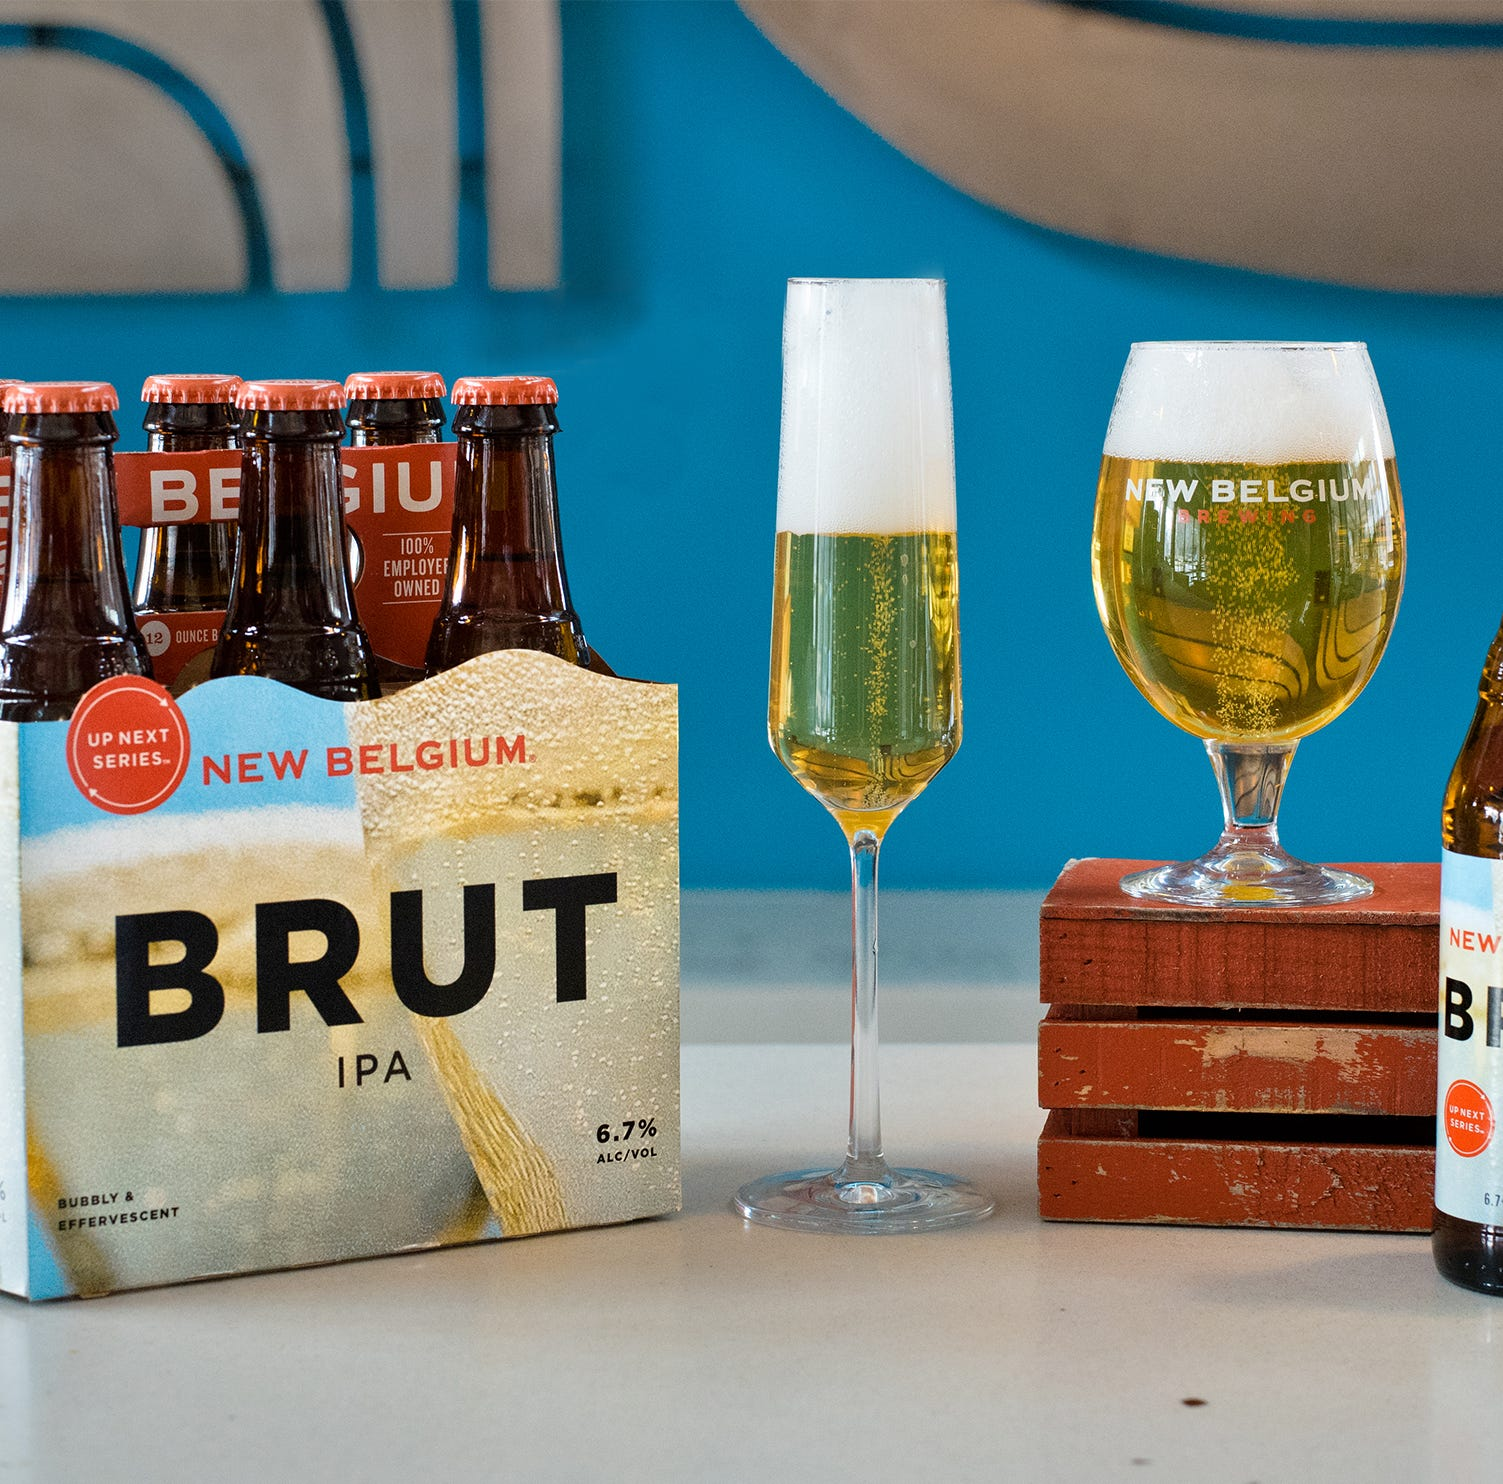 New Belgium makes champagne-inspired beer